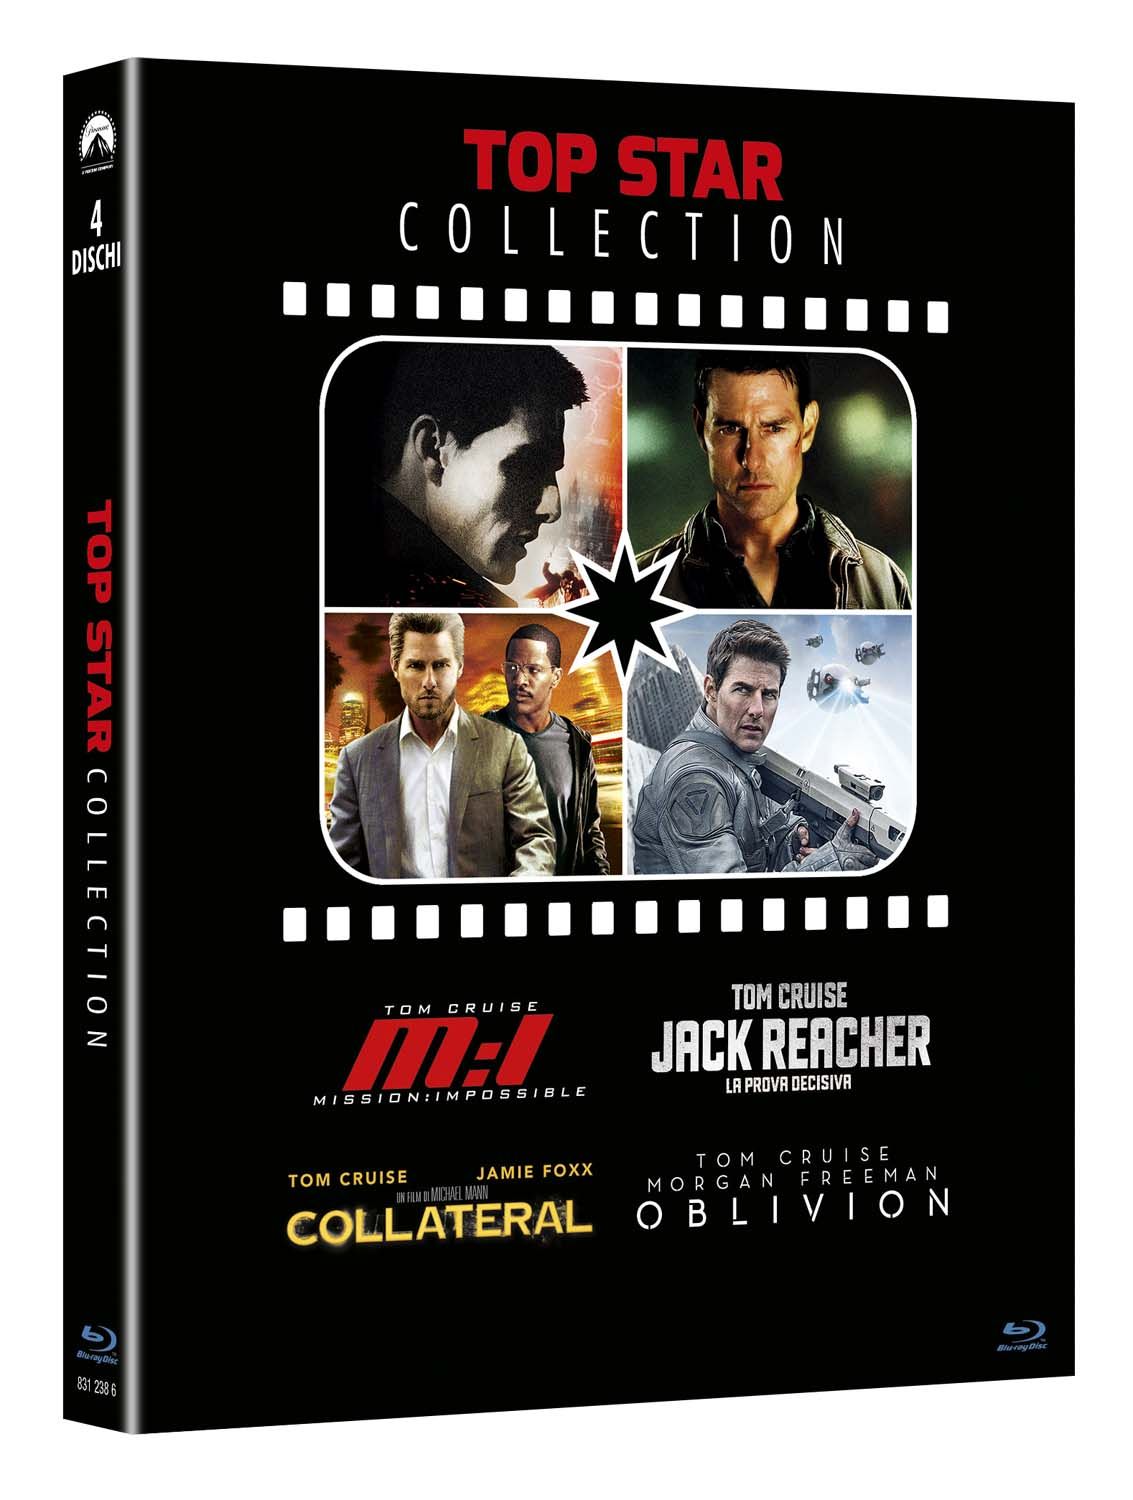 COF.TOM CRUISE COLLECTION (4 BLU-RAY) MISSION IMPOSSIBLE - JACK